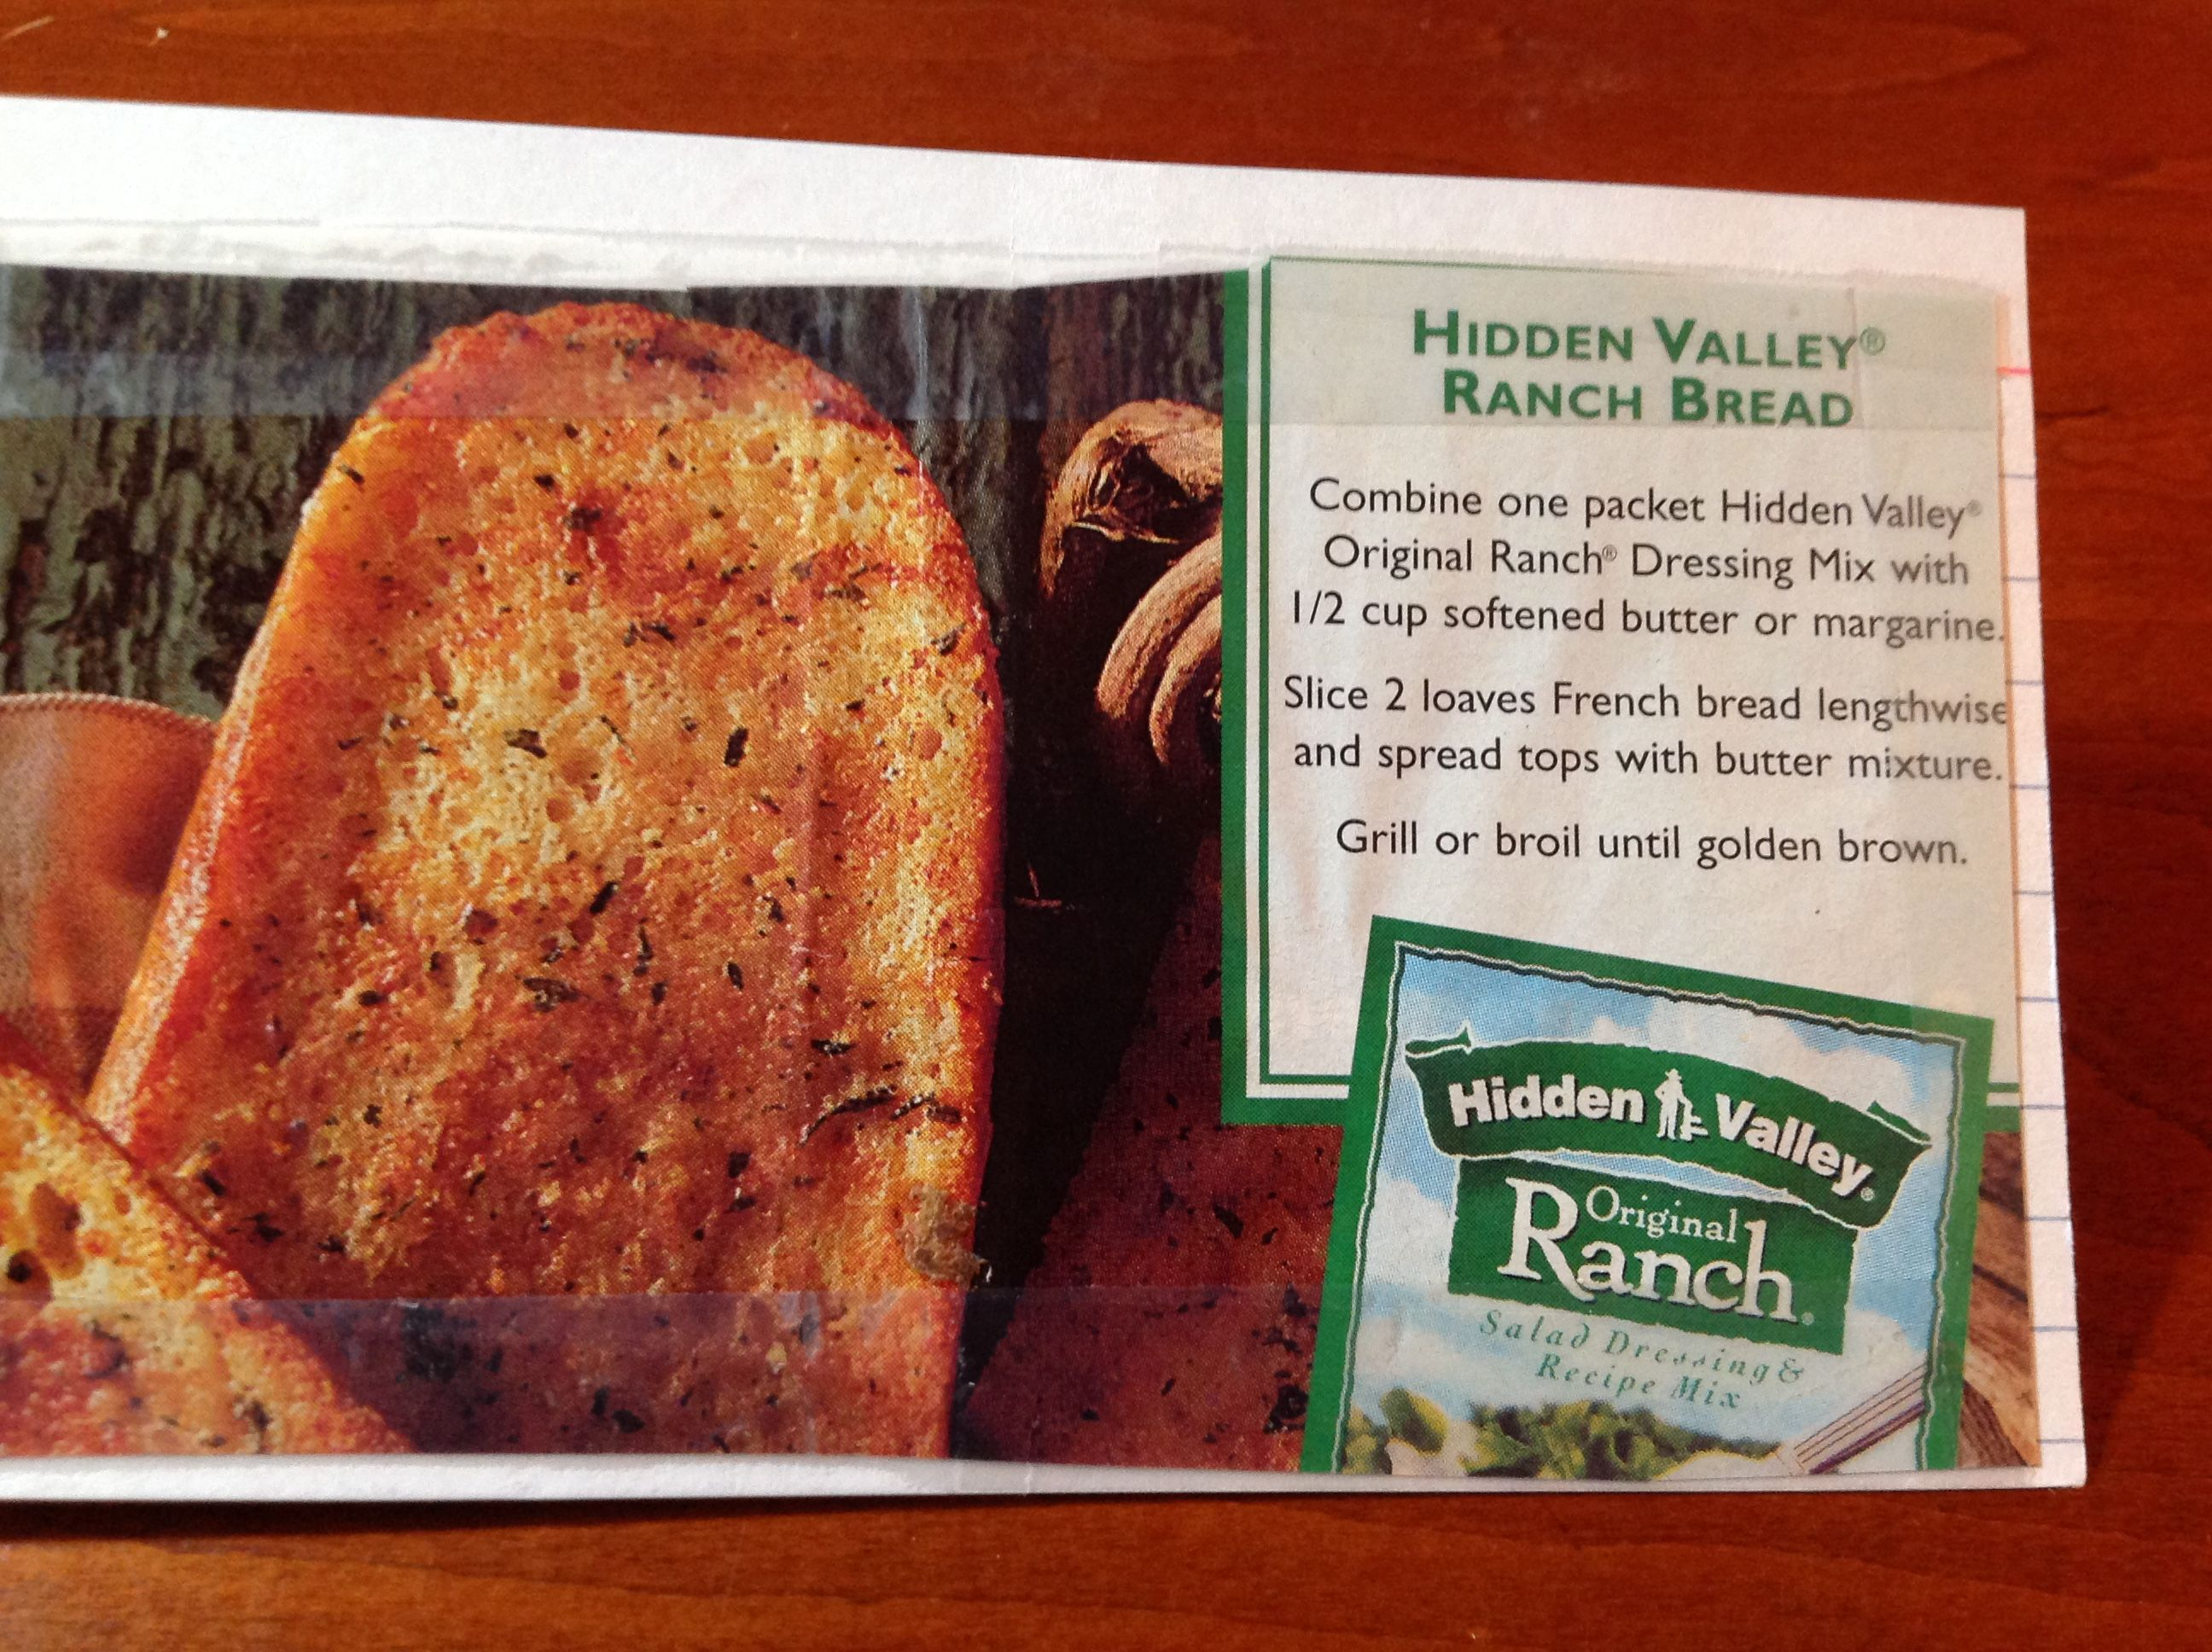 HIDDEN VALLEY RANCH Bread